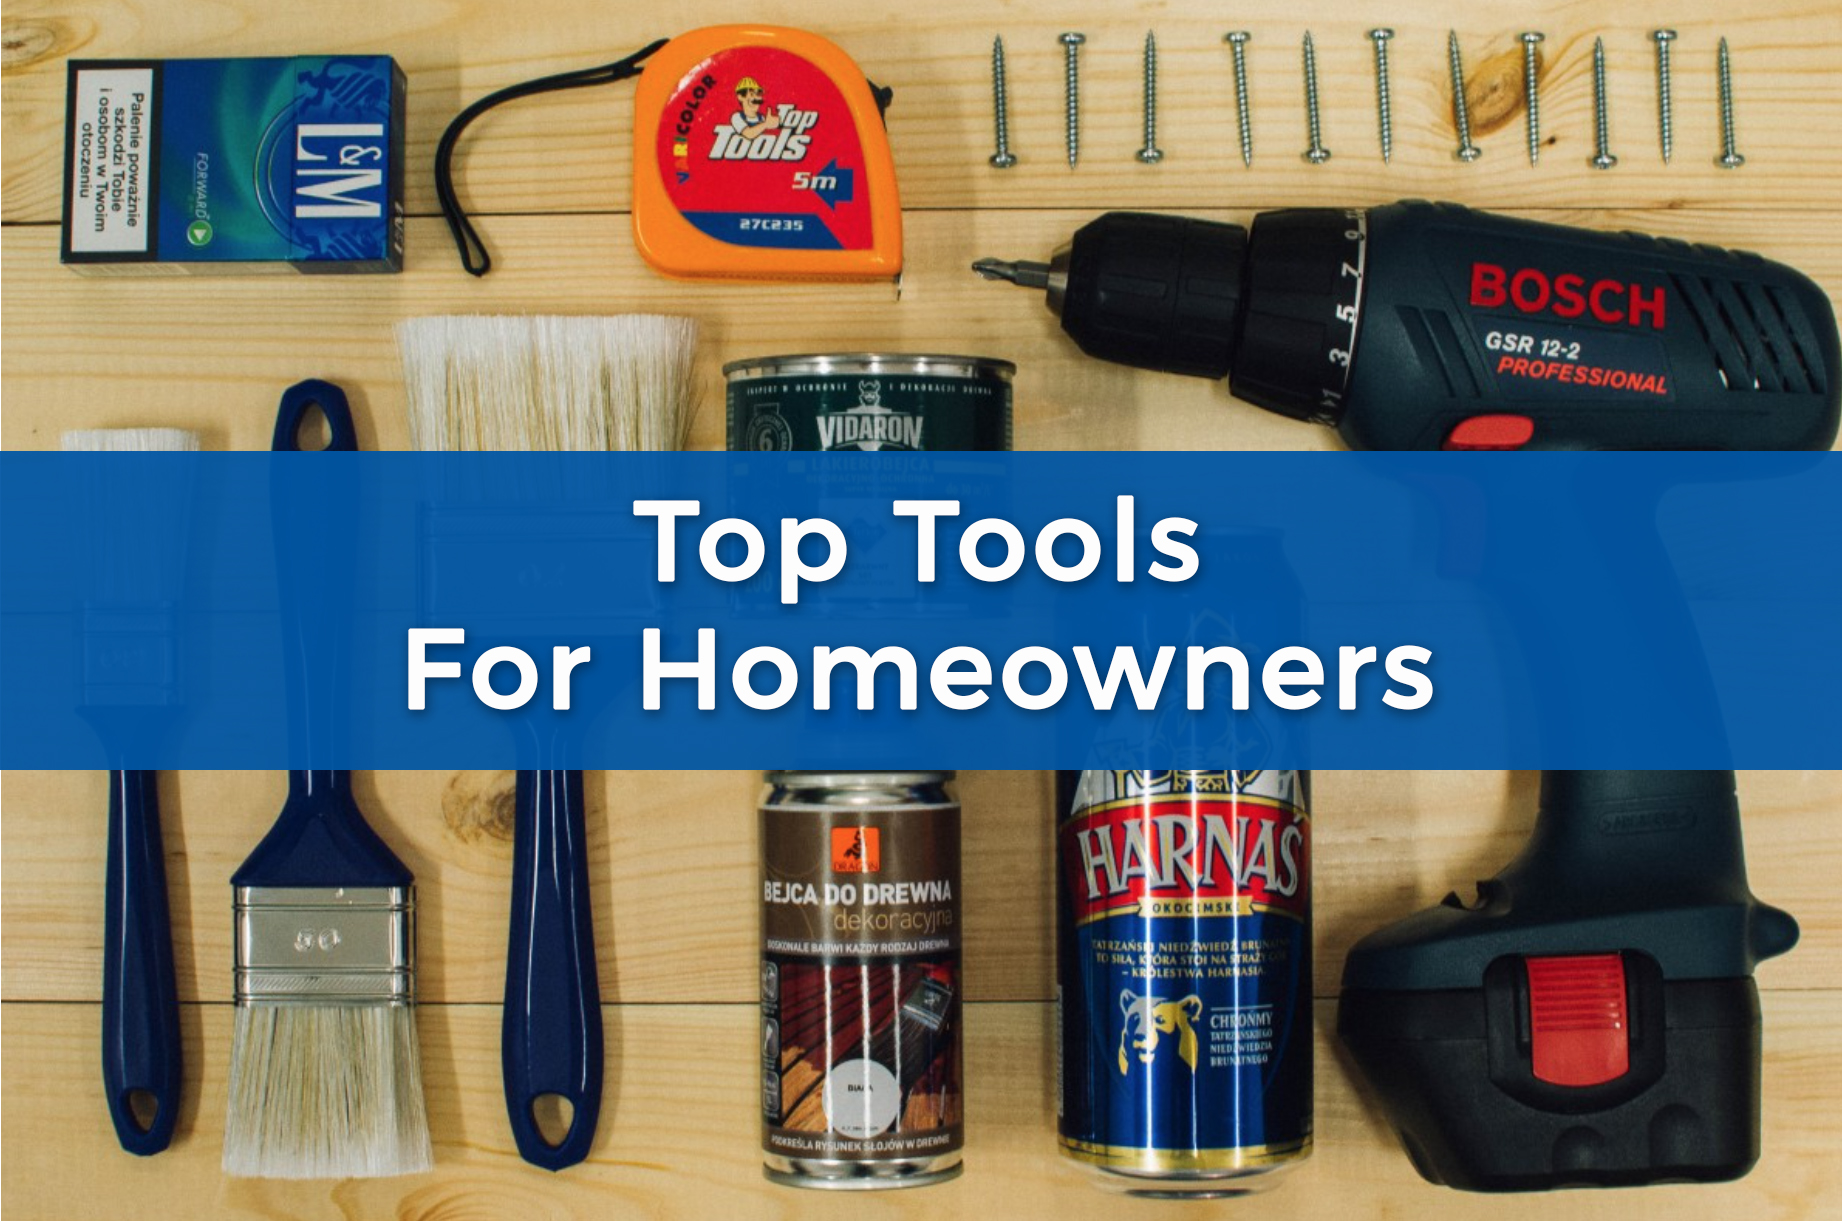 Top Tools For Homeowners.jpg